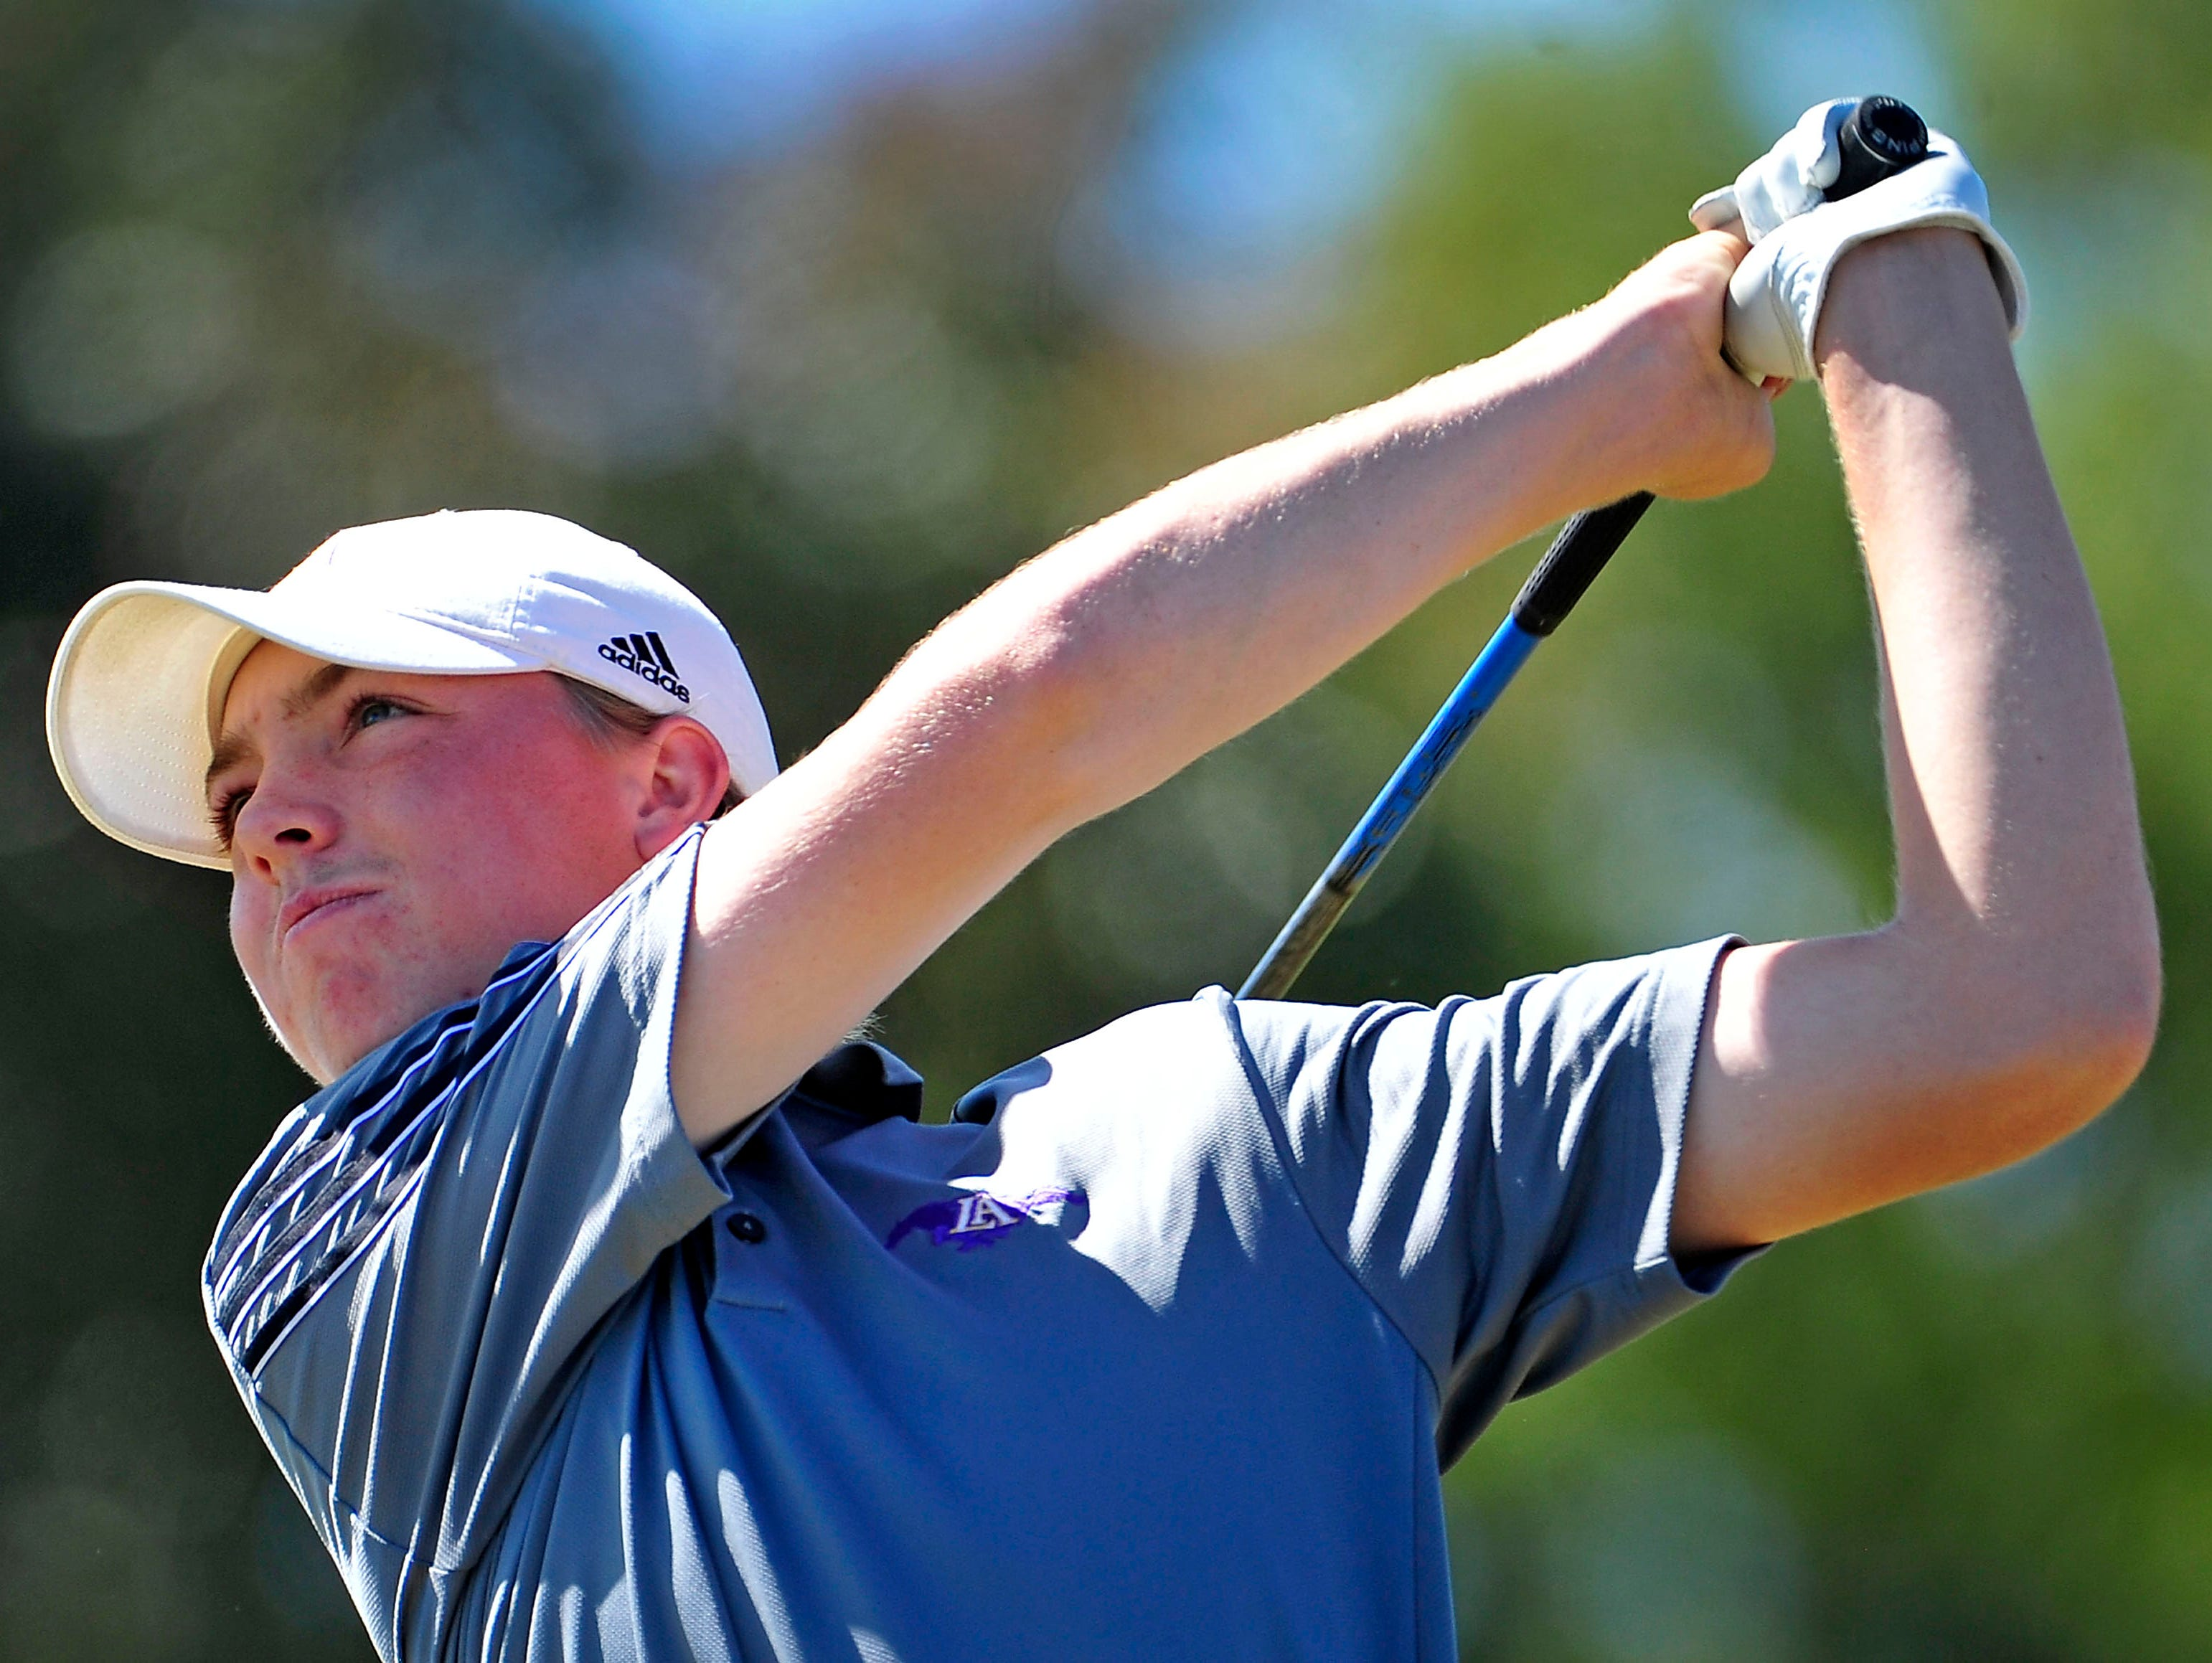 Lipscomb Academy's Davis Armstrong watches his tee shot on the sixth hole during the Class A/AA State Golf Tournament at WillowBrook Golf Club in Manchester, Tenn., Wednesday, Oct. 14, 2015.